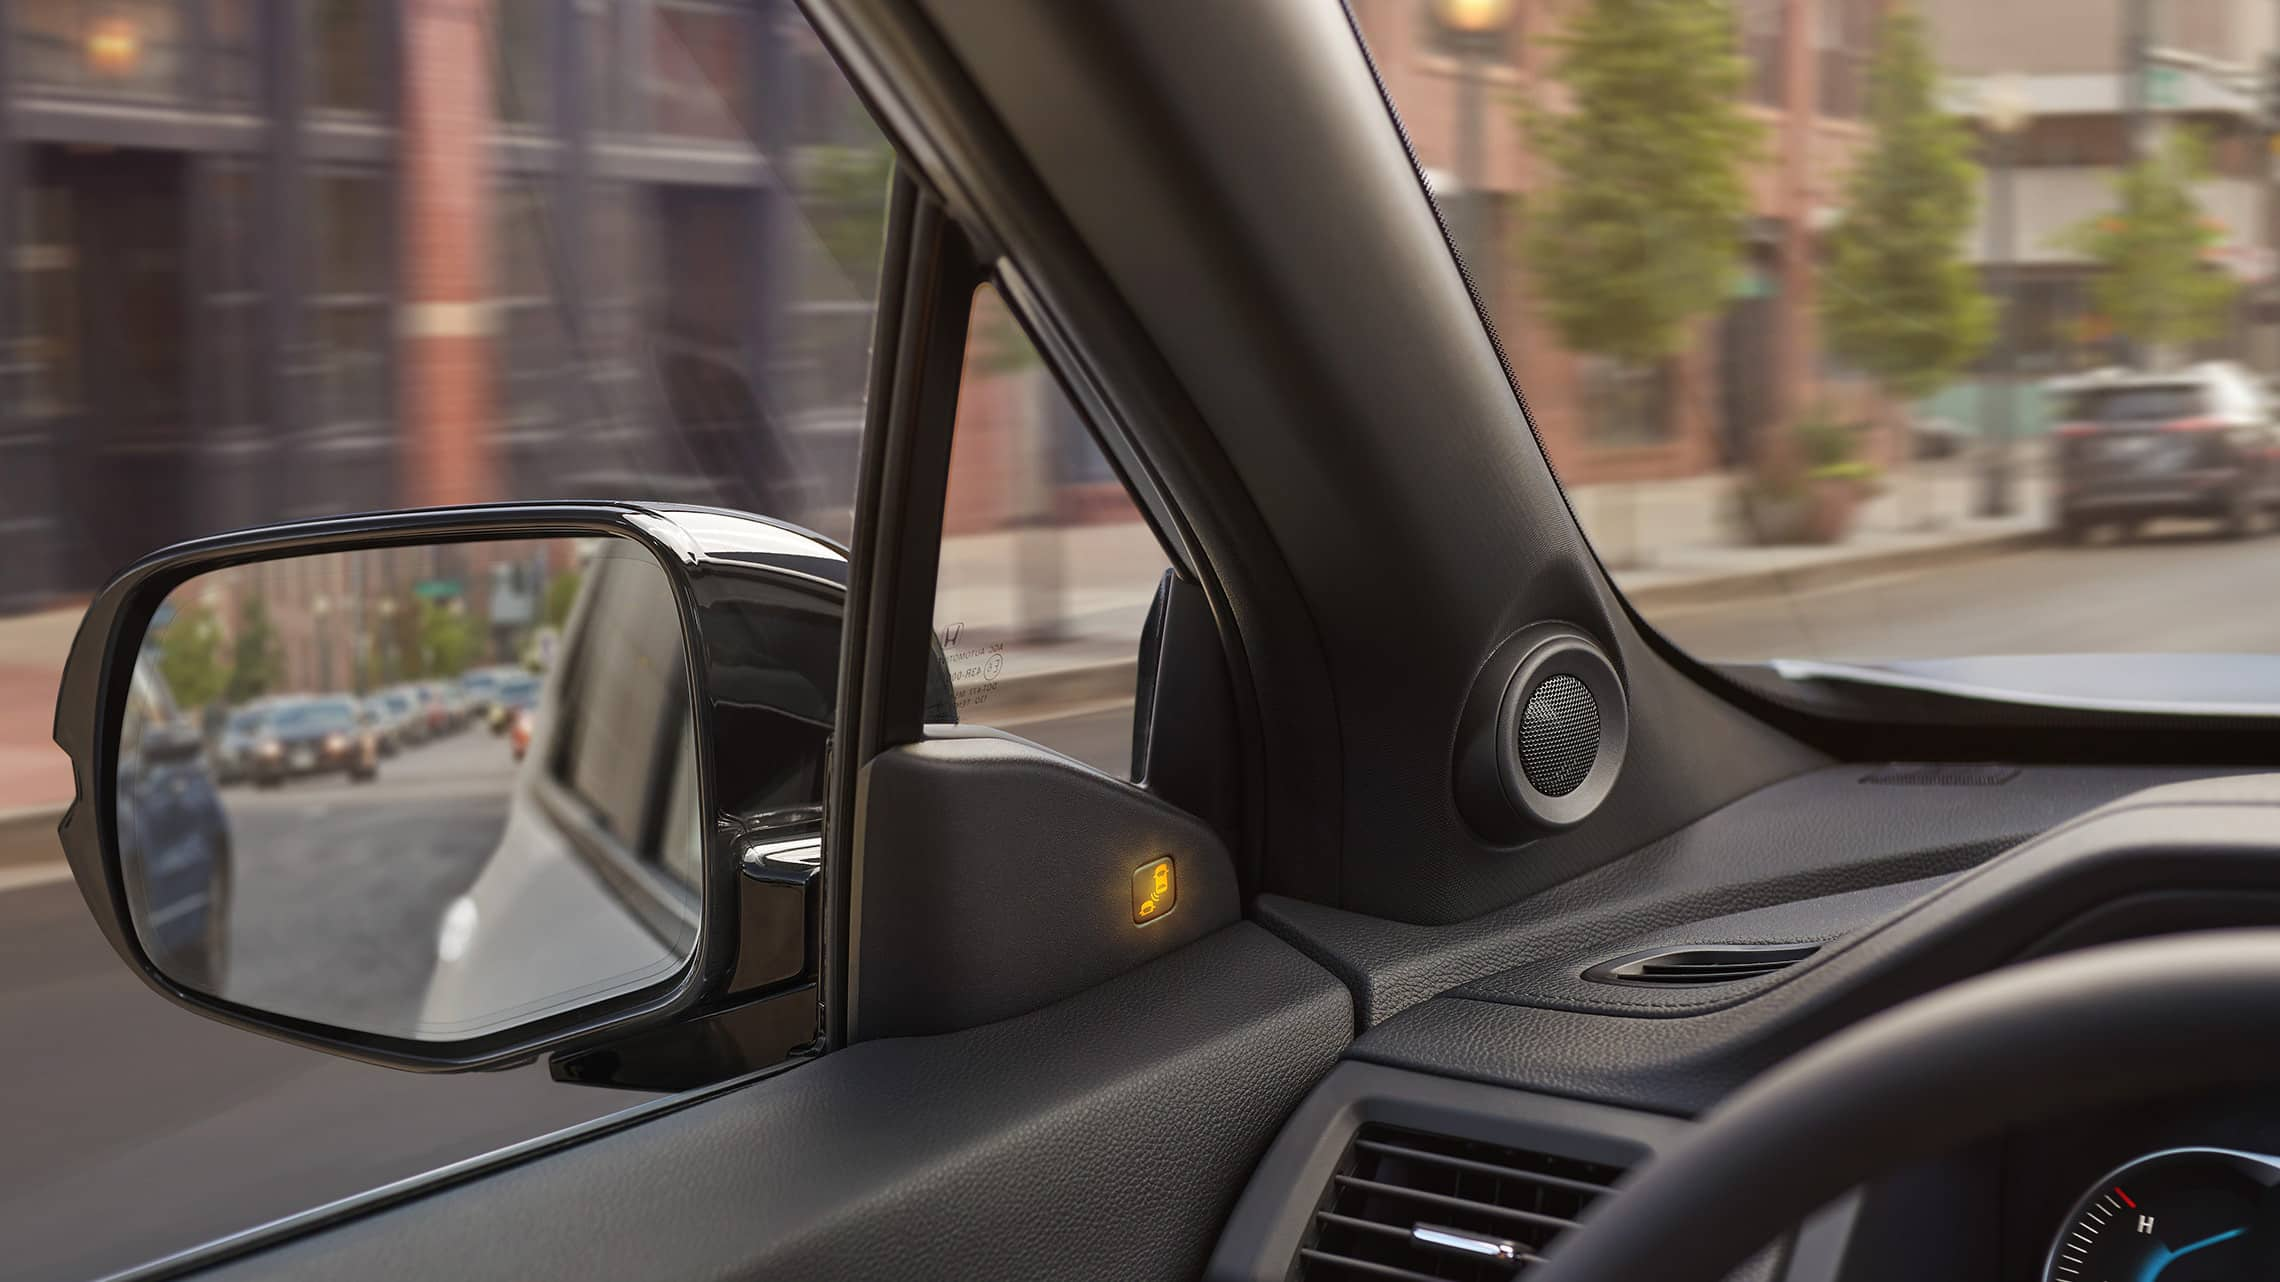 2020 Honda Passport Elite in Lunar Silver Metallic demonstrating the blind spot information system.